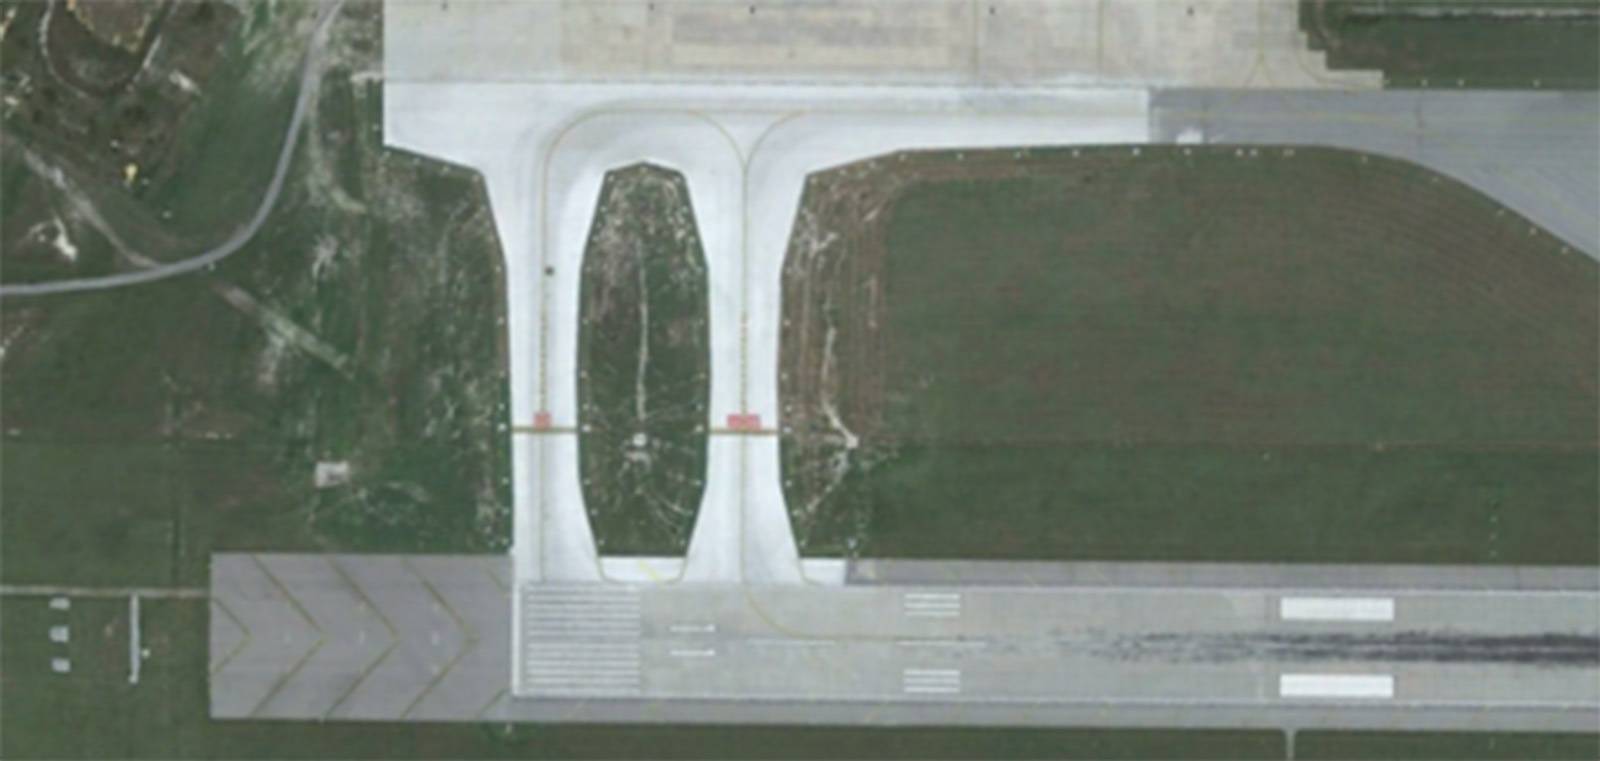 TAXIWAY A REHABILITATION (AFTER) COLUMBIA METROPOLITAN AIRPORT (CAE)